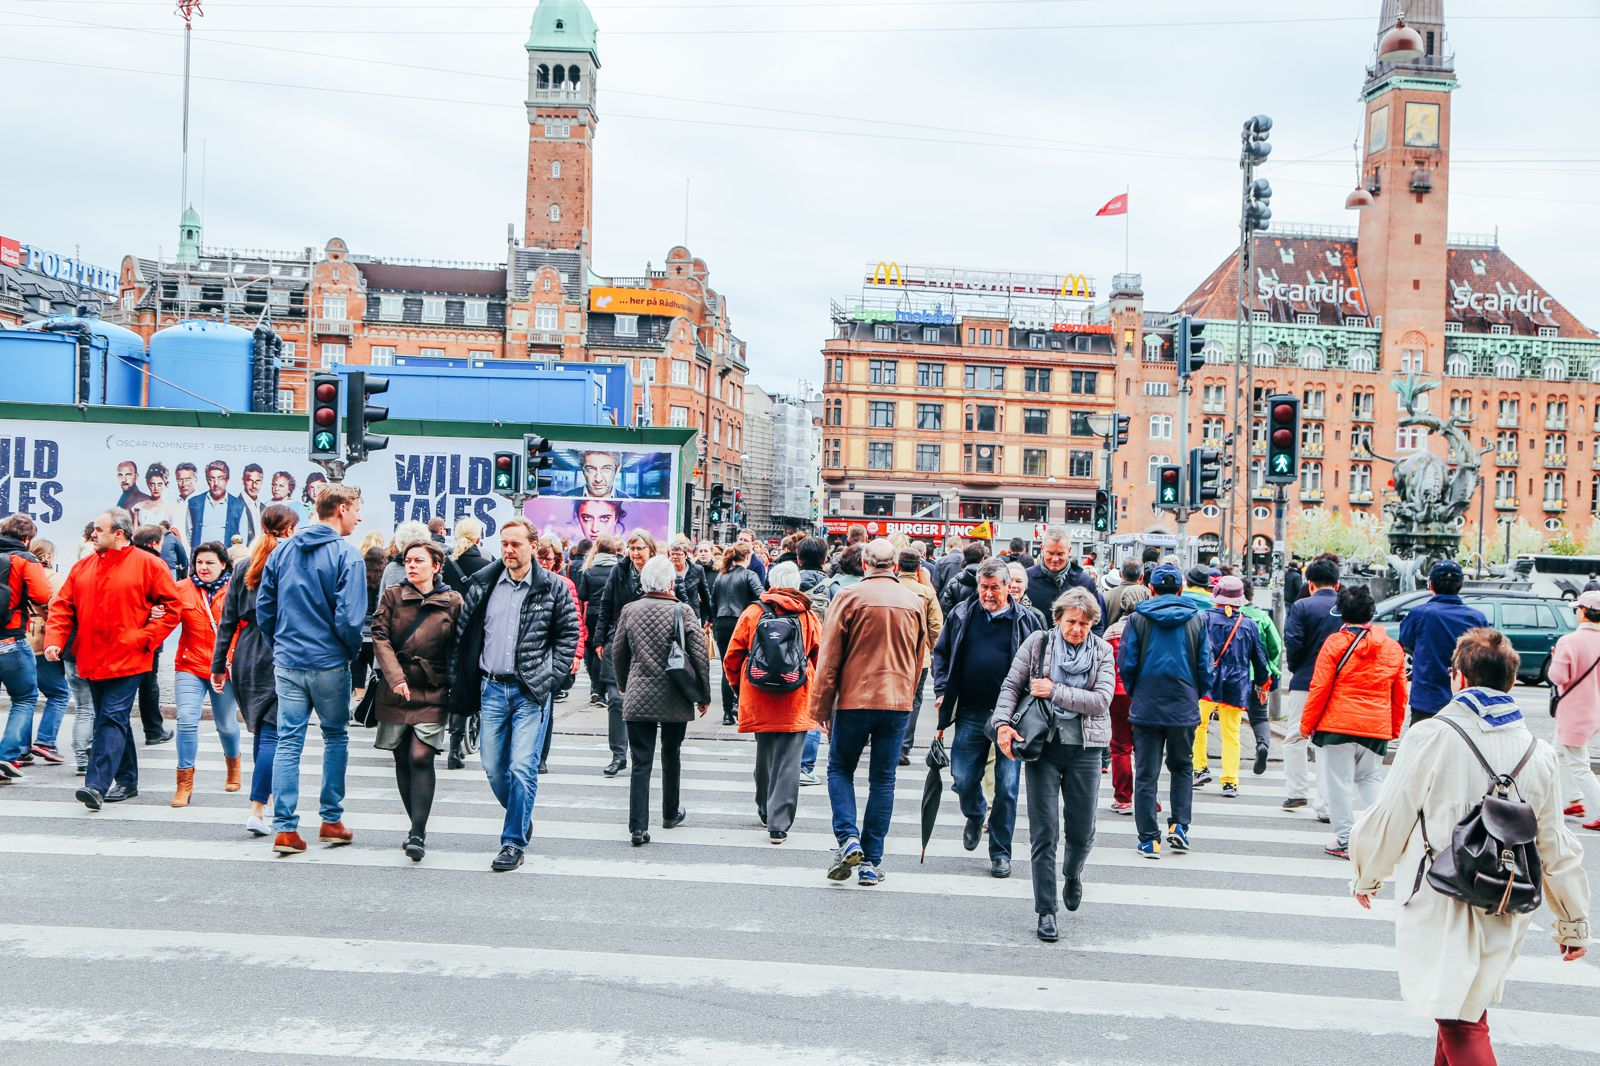 The Complete Guide On All The Things To See, Eat And Do In Copenhagen, Denmark (5)